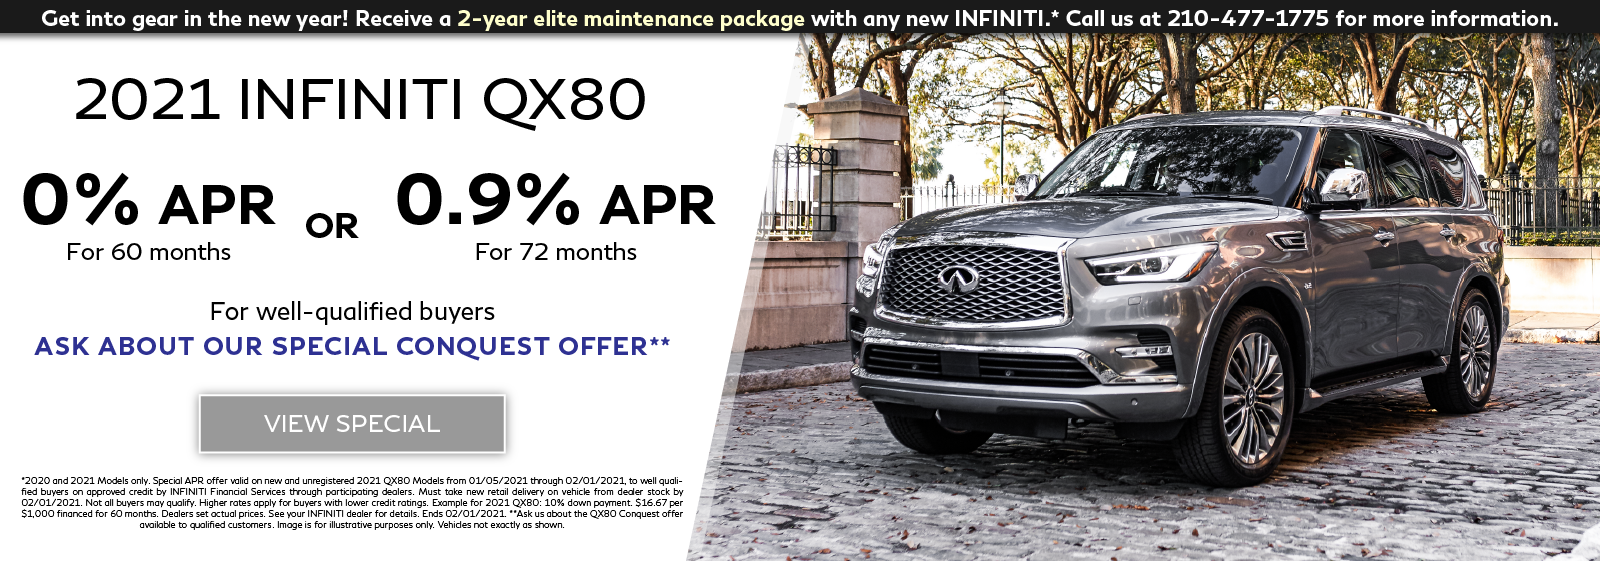 Well-qualified customers can finance any new 2021 QX80 with 0% APR for 60 months plus get a 2-year elite maintentenance package. Click to view special.